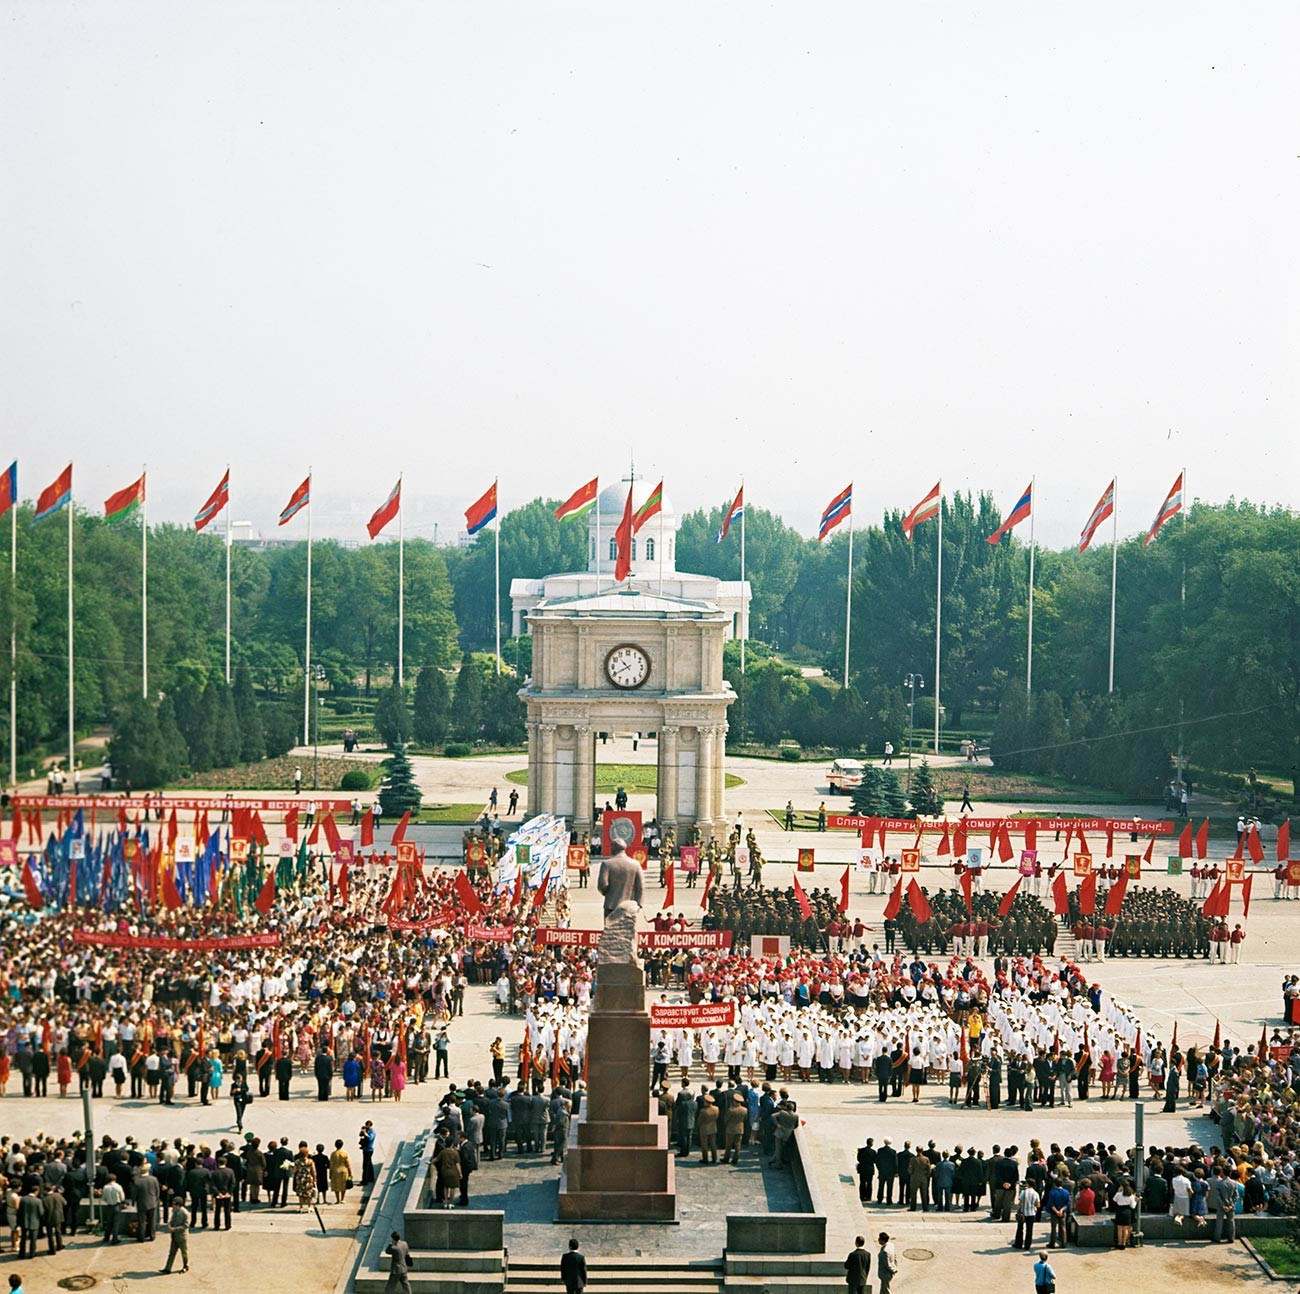 Victory Day celebration on Victory Square in Chisinau, 1976